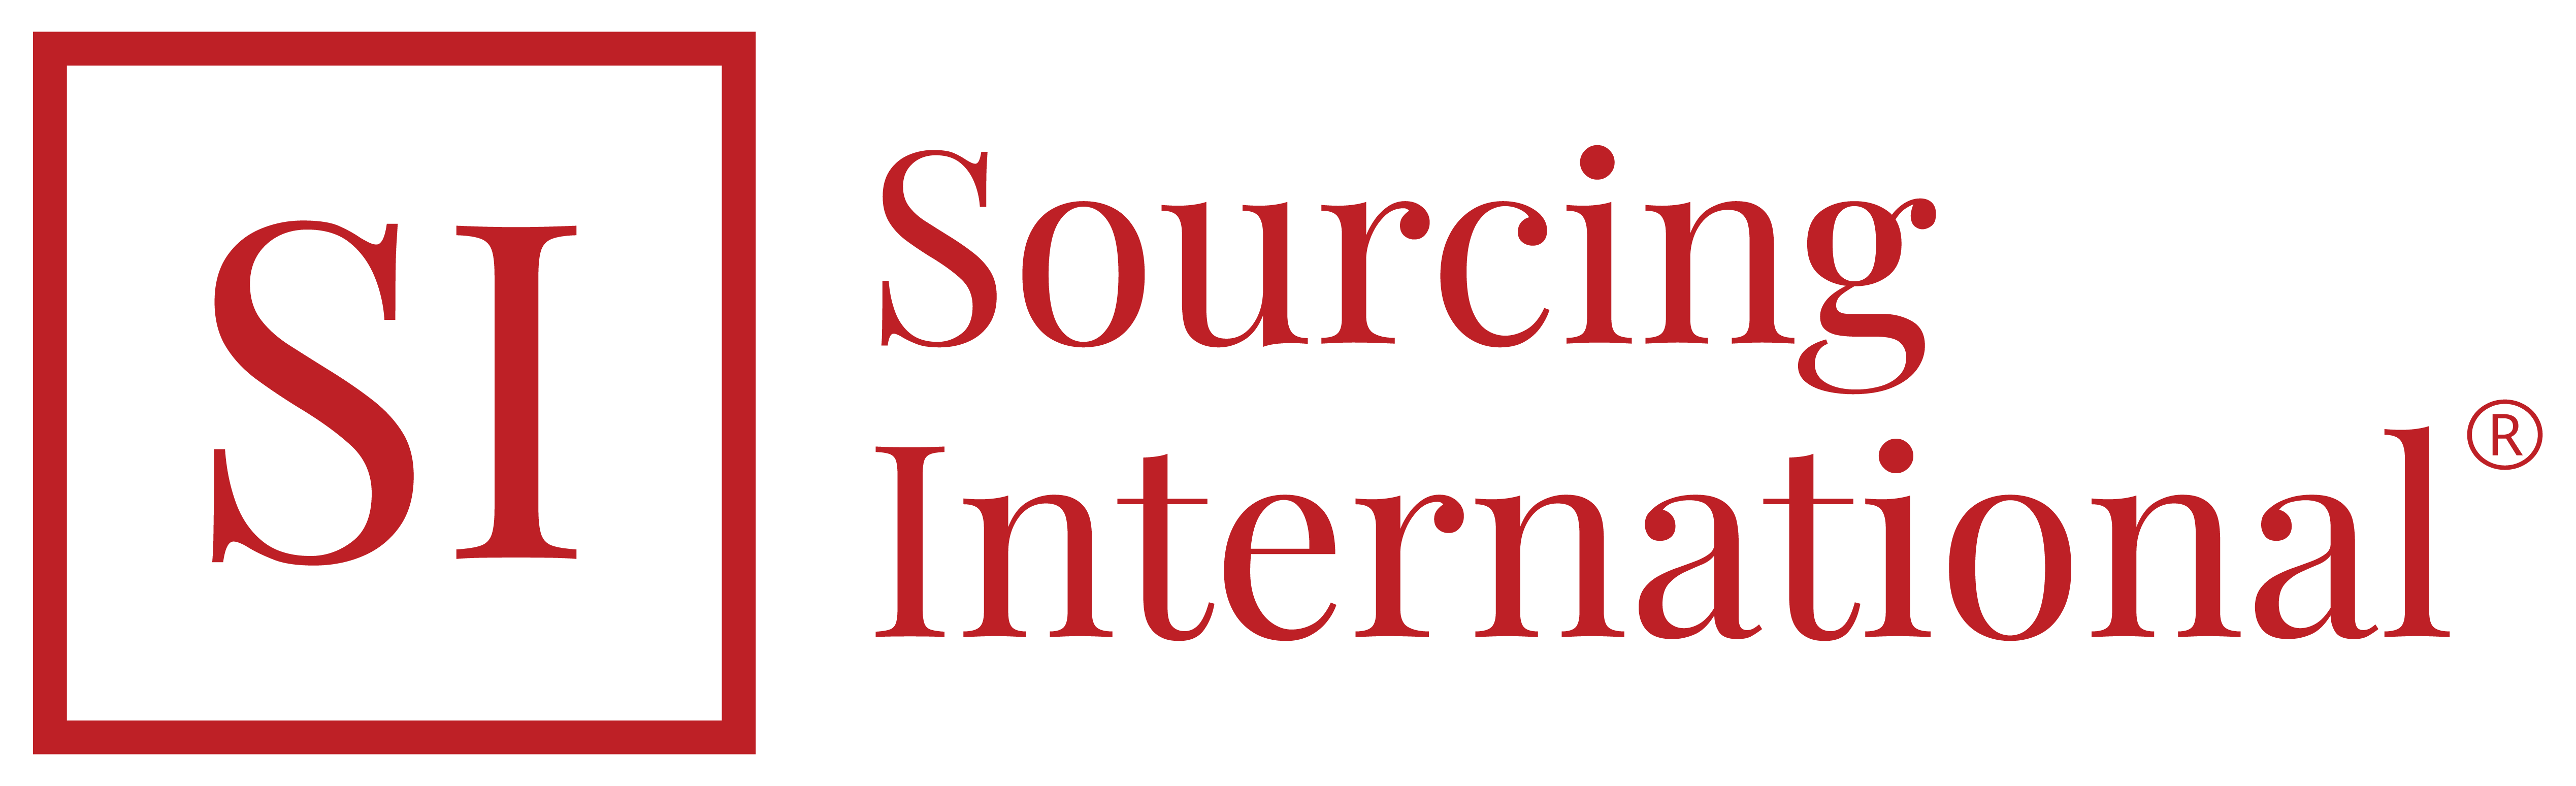 Sourcing International logo